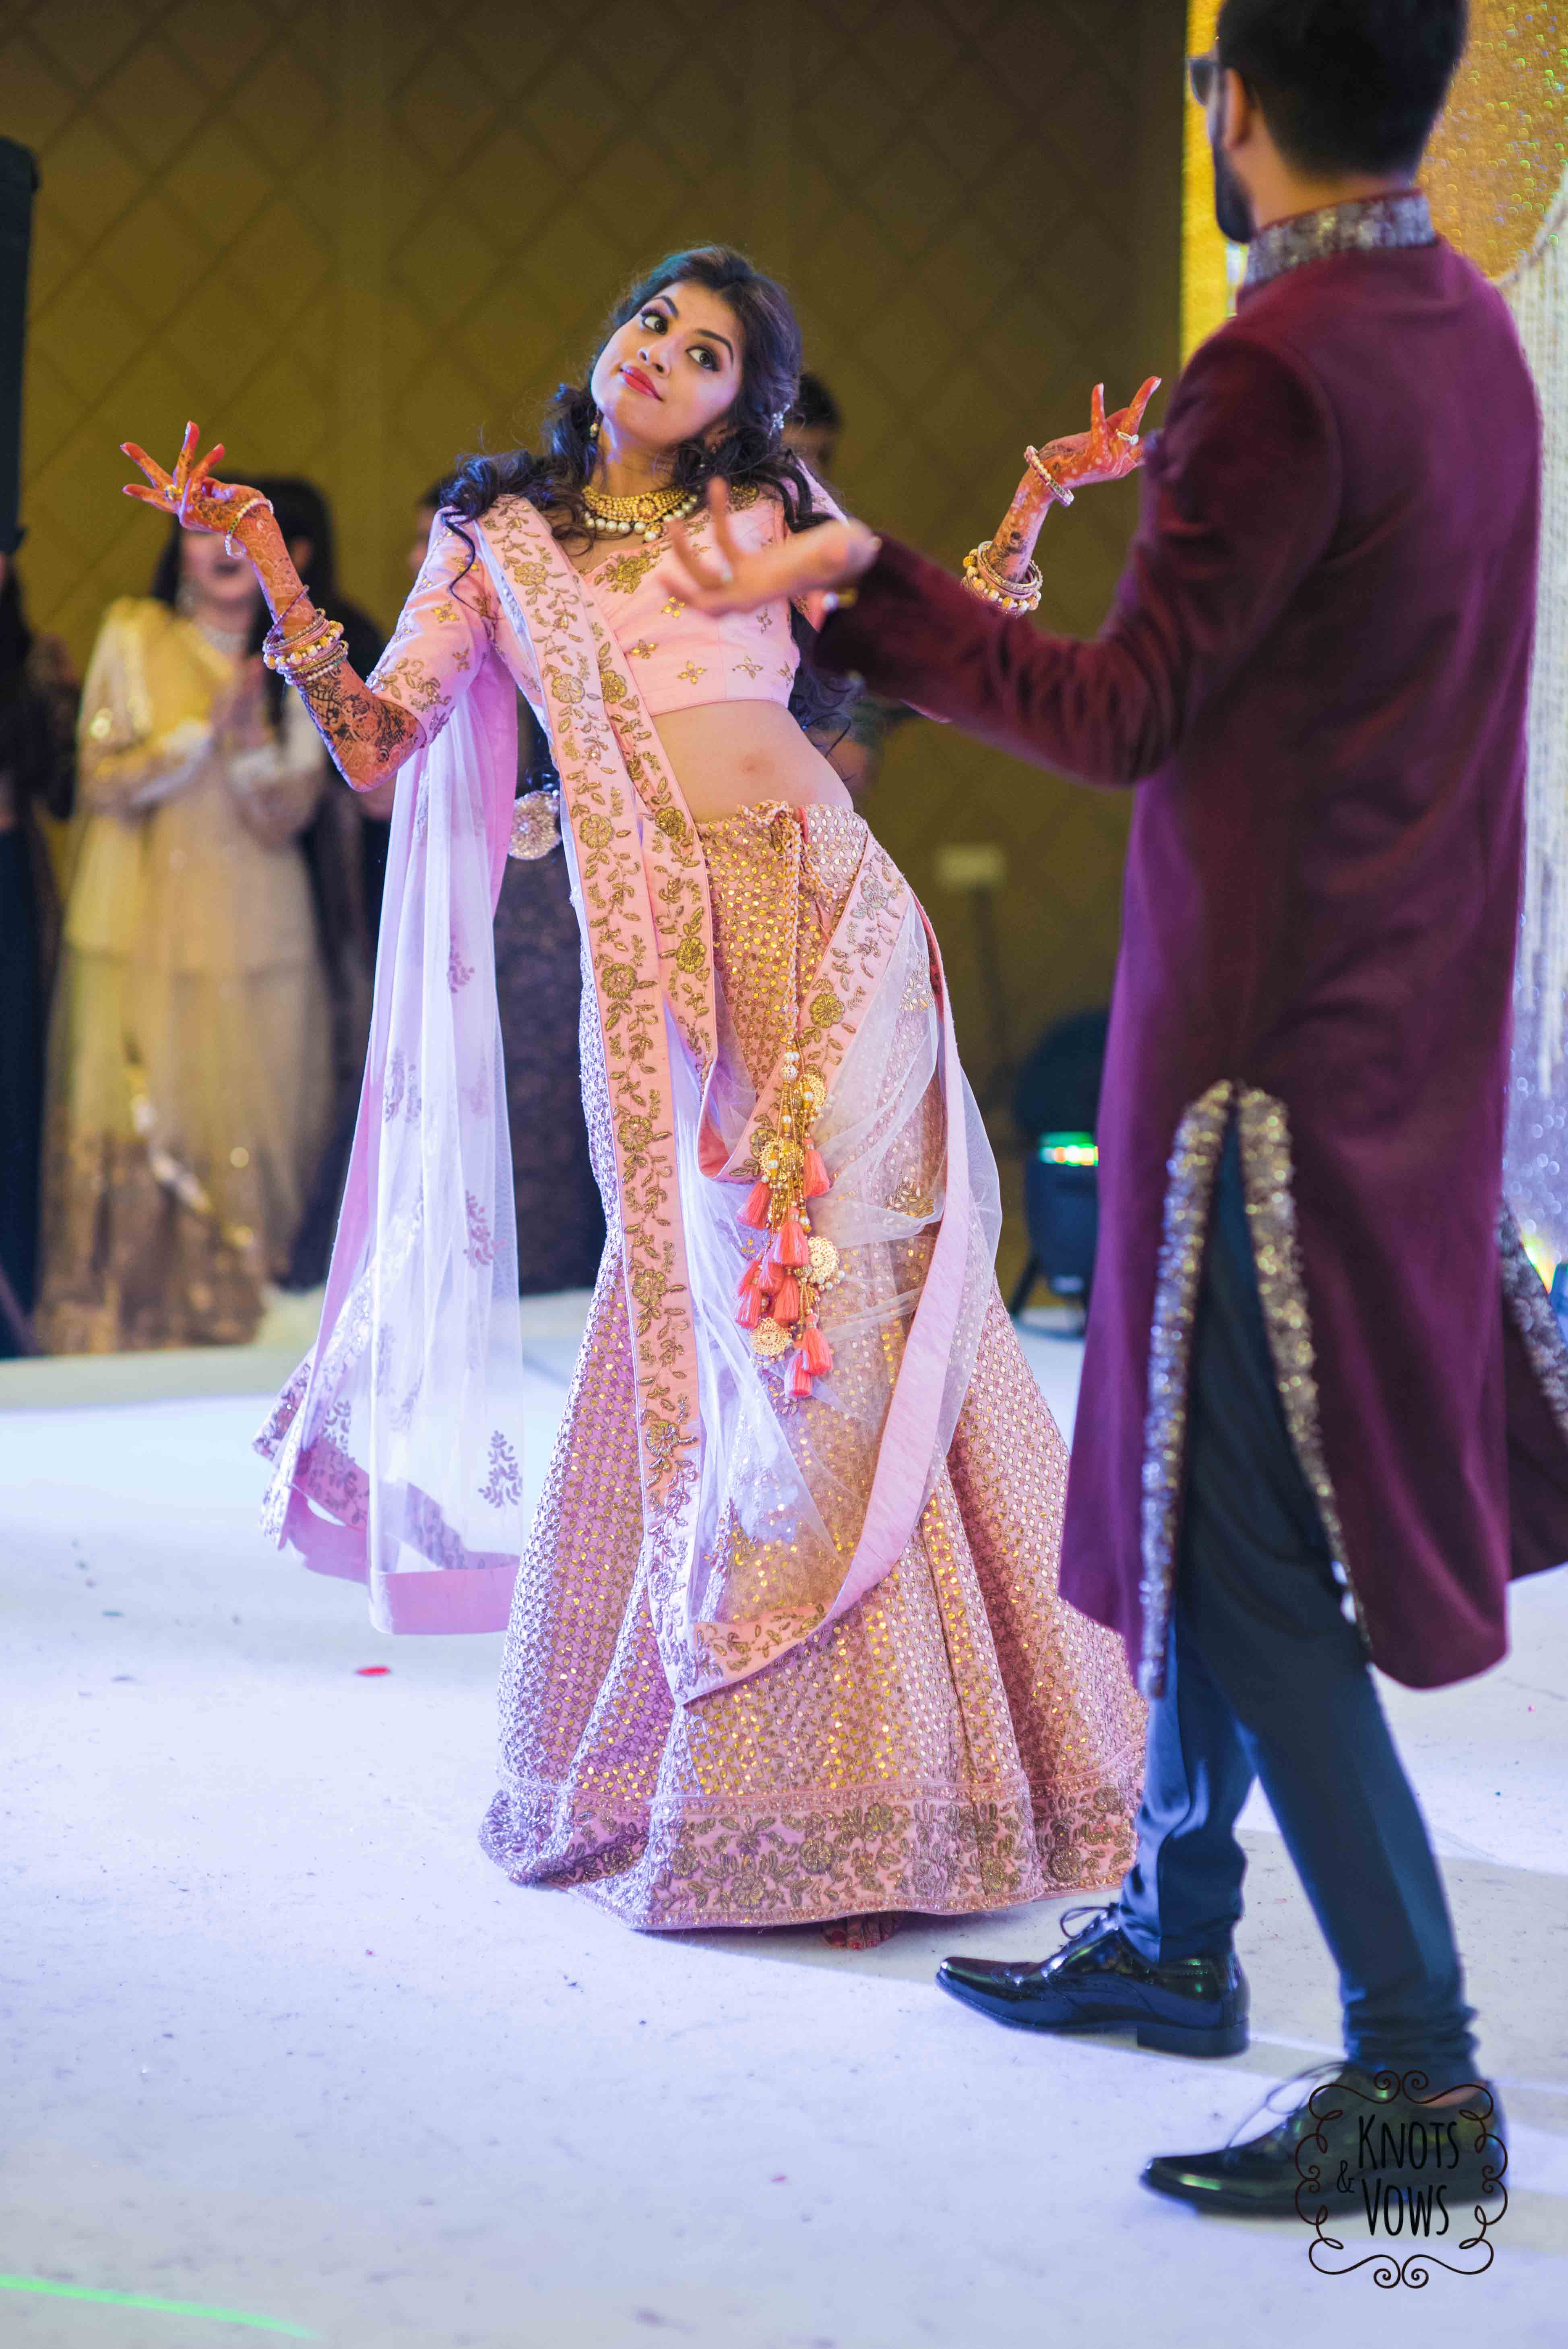 Wedding Photography Mumbai Gujrati Wedding